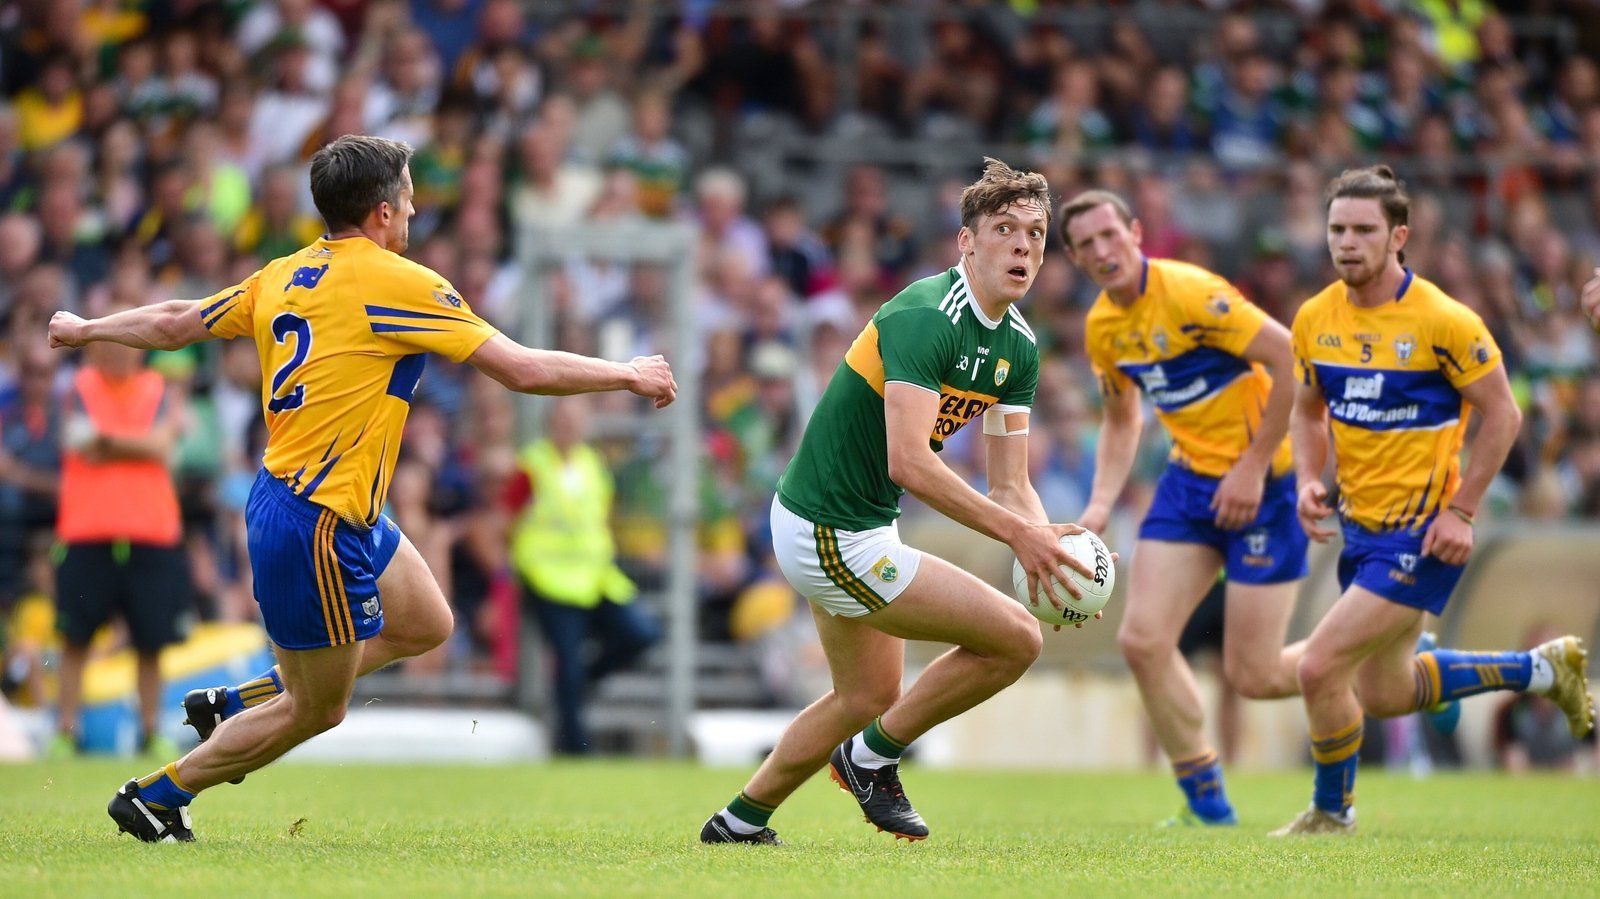 Image - On his championship debut against Clare last year